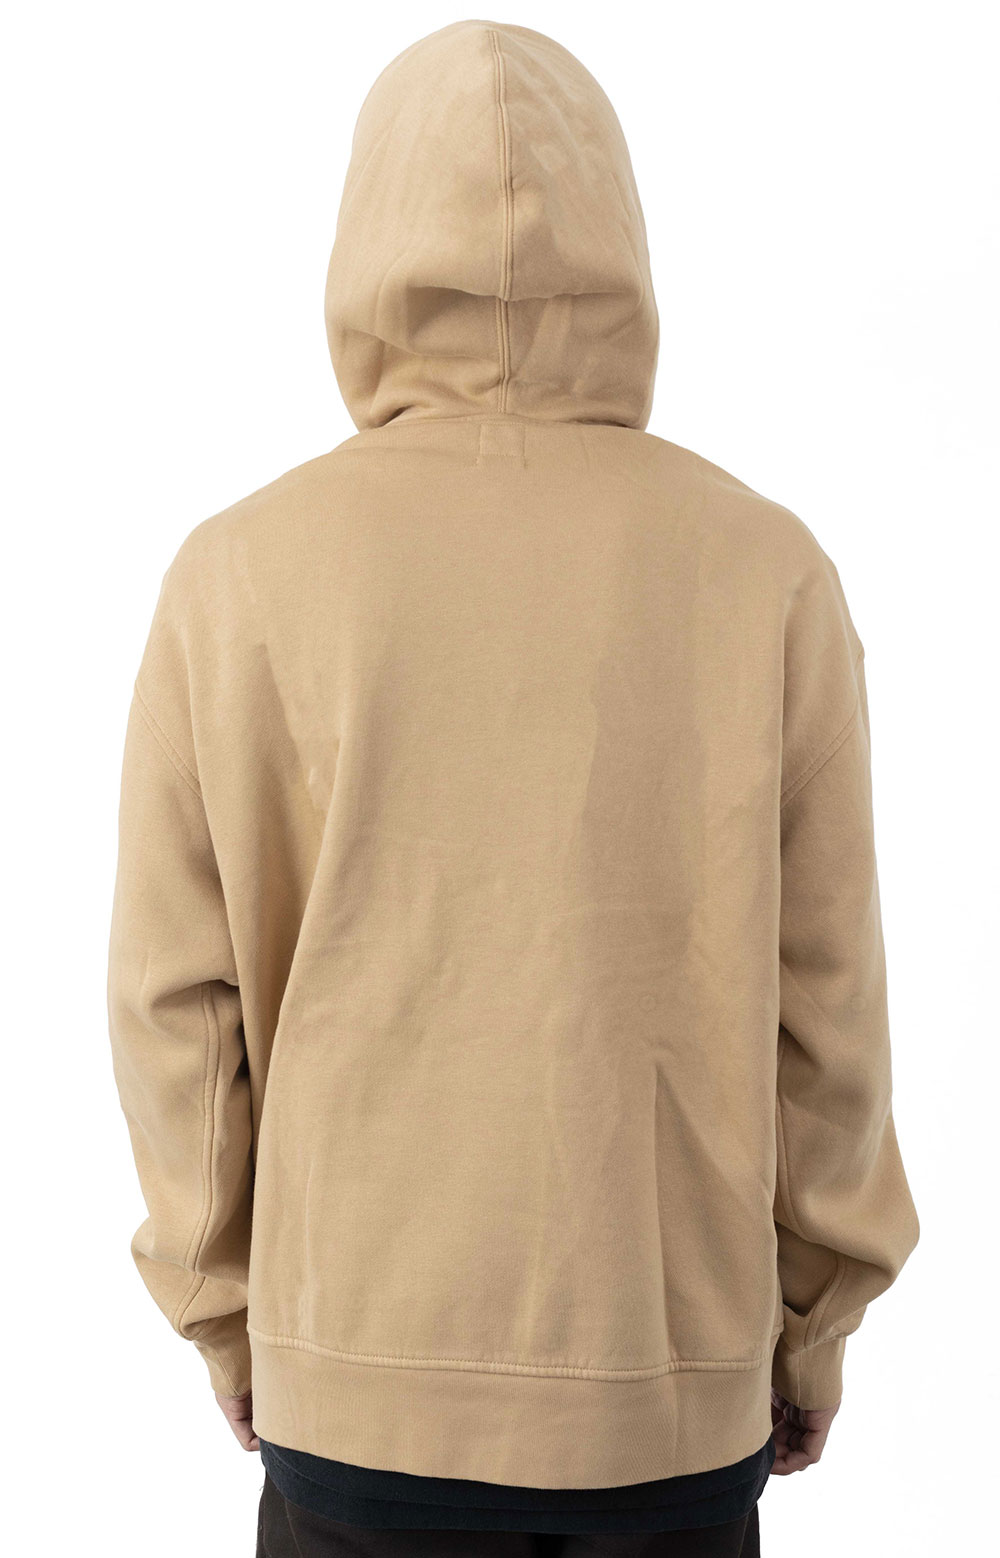 (38821-0023) T3 Relaxed Graphic Pullover Hoodie - Curds & Whey  3